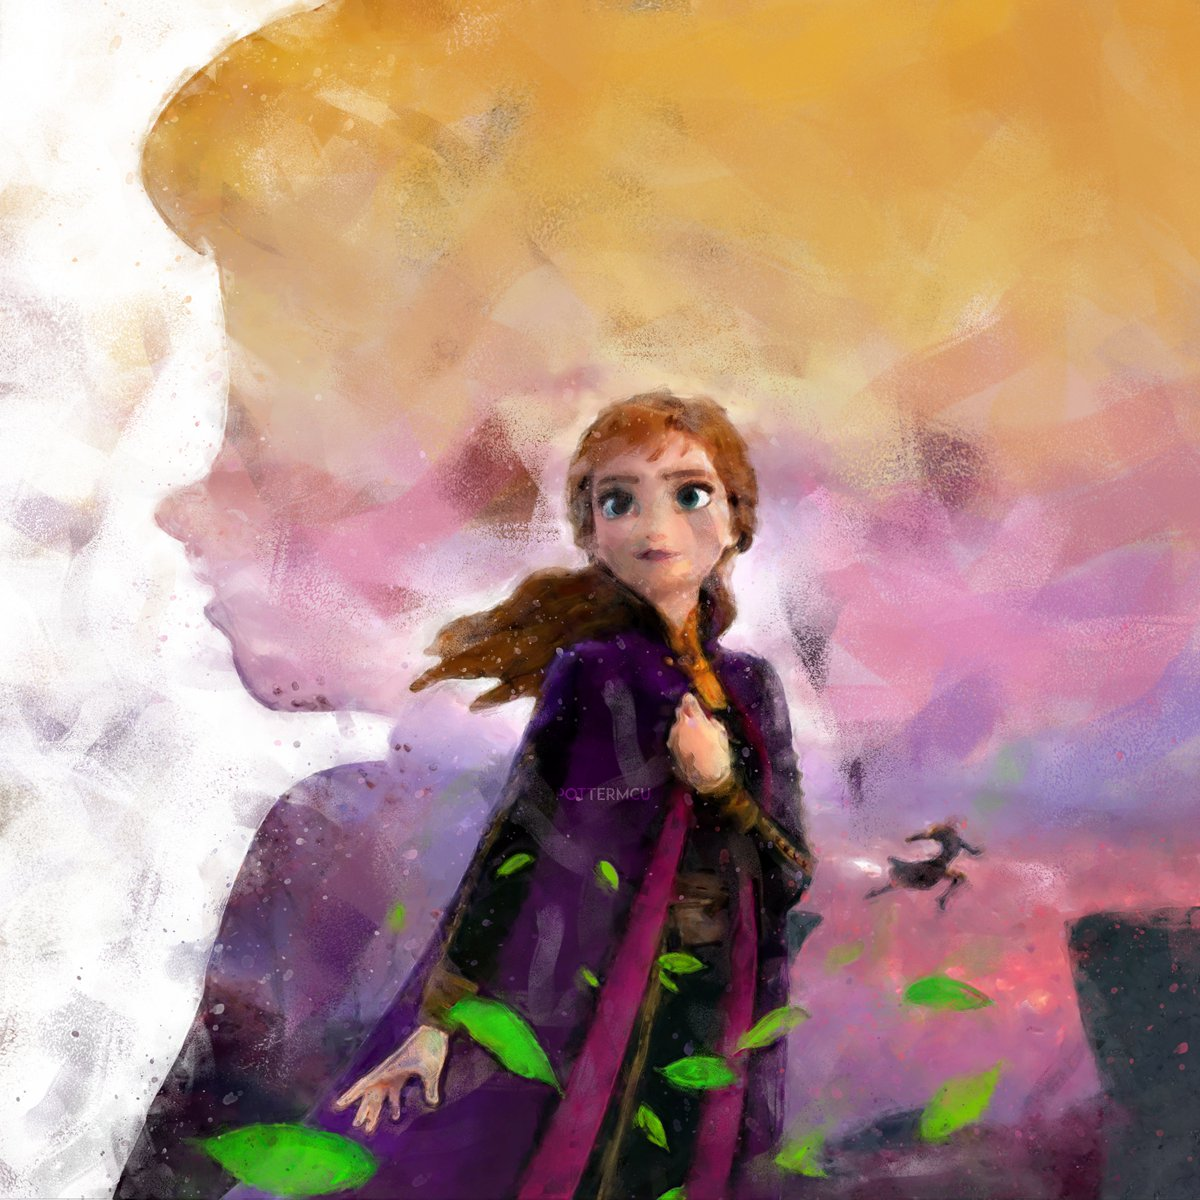 a bridge has two sides... and mother had two daughters  #Frozen2  #frozen2spoilers <br>http://pic.twitter.com/rAMW0OlpsA